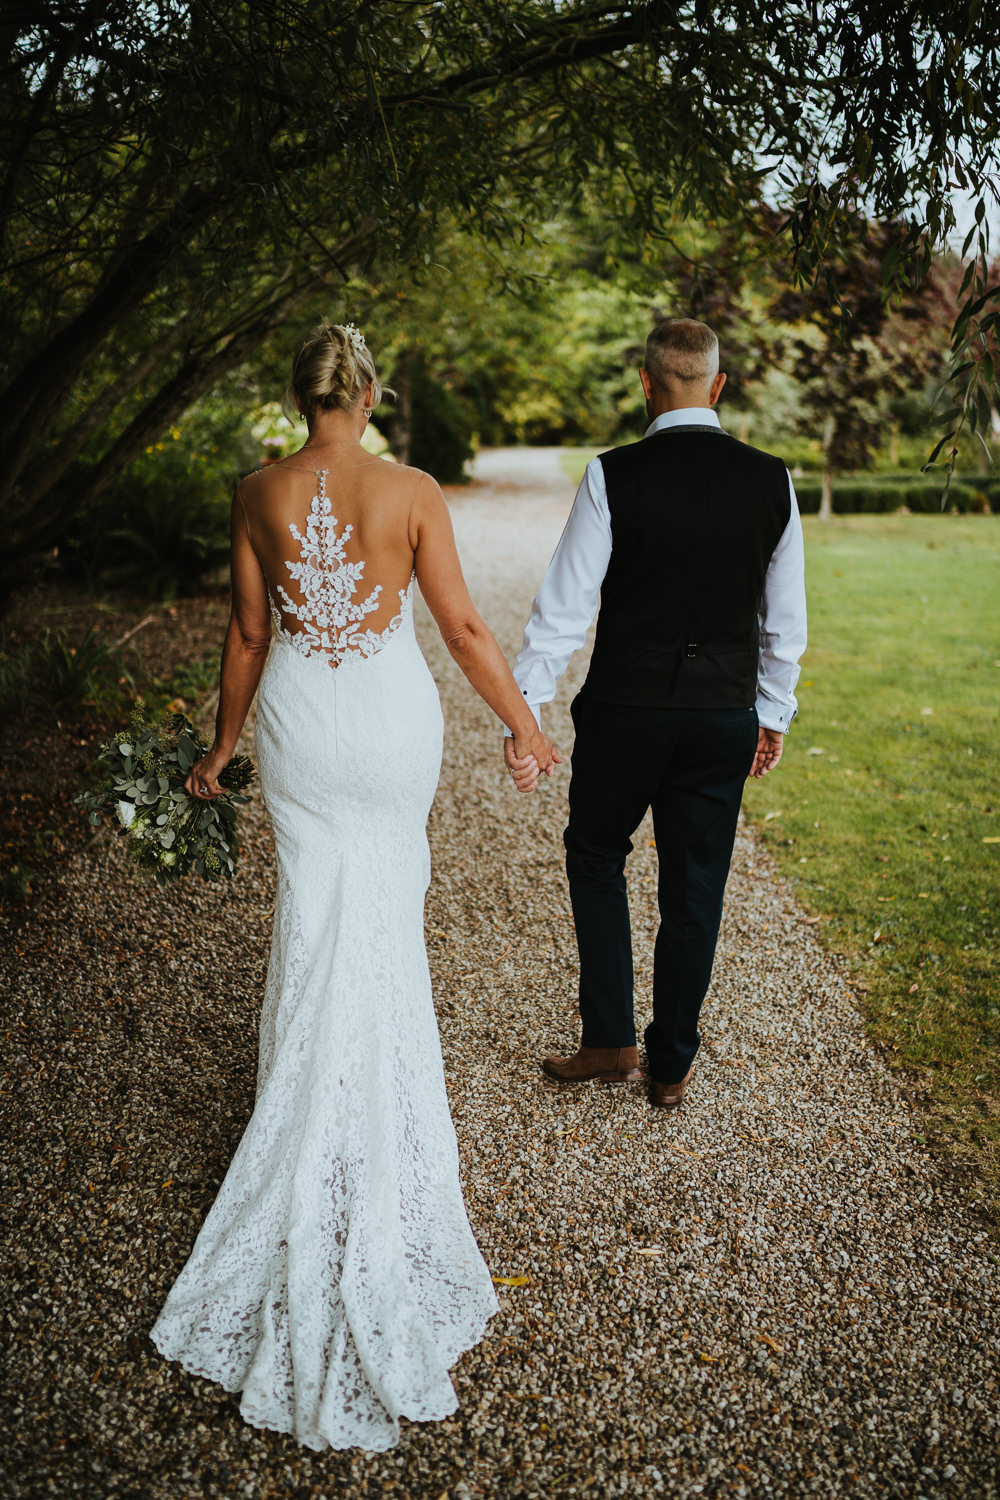 Dress Gown Bride Bridal Illusion Lace Back Train Micro Wedding Nicola Dawson Photography